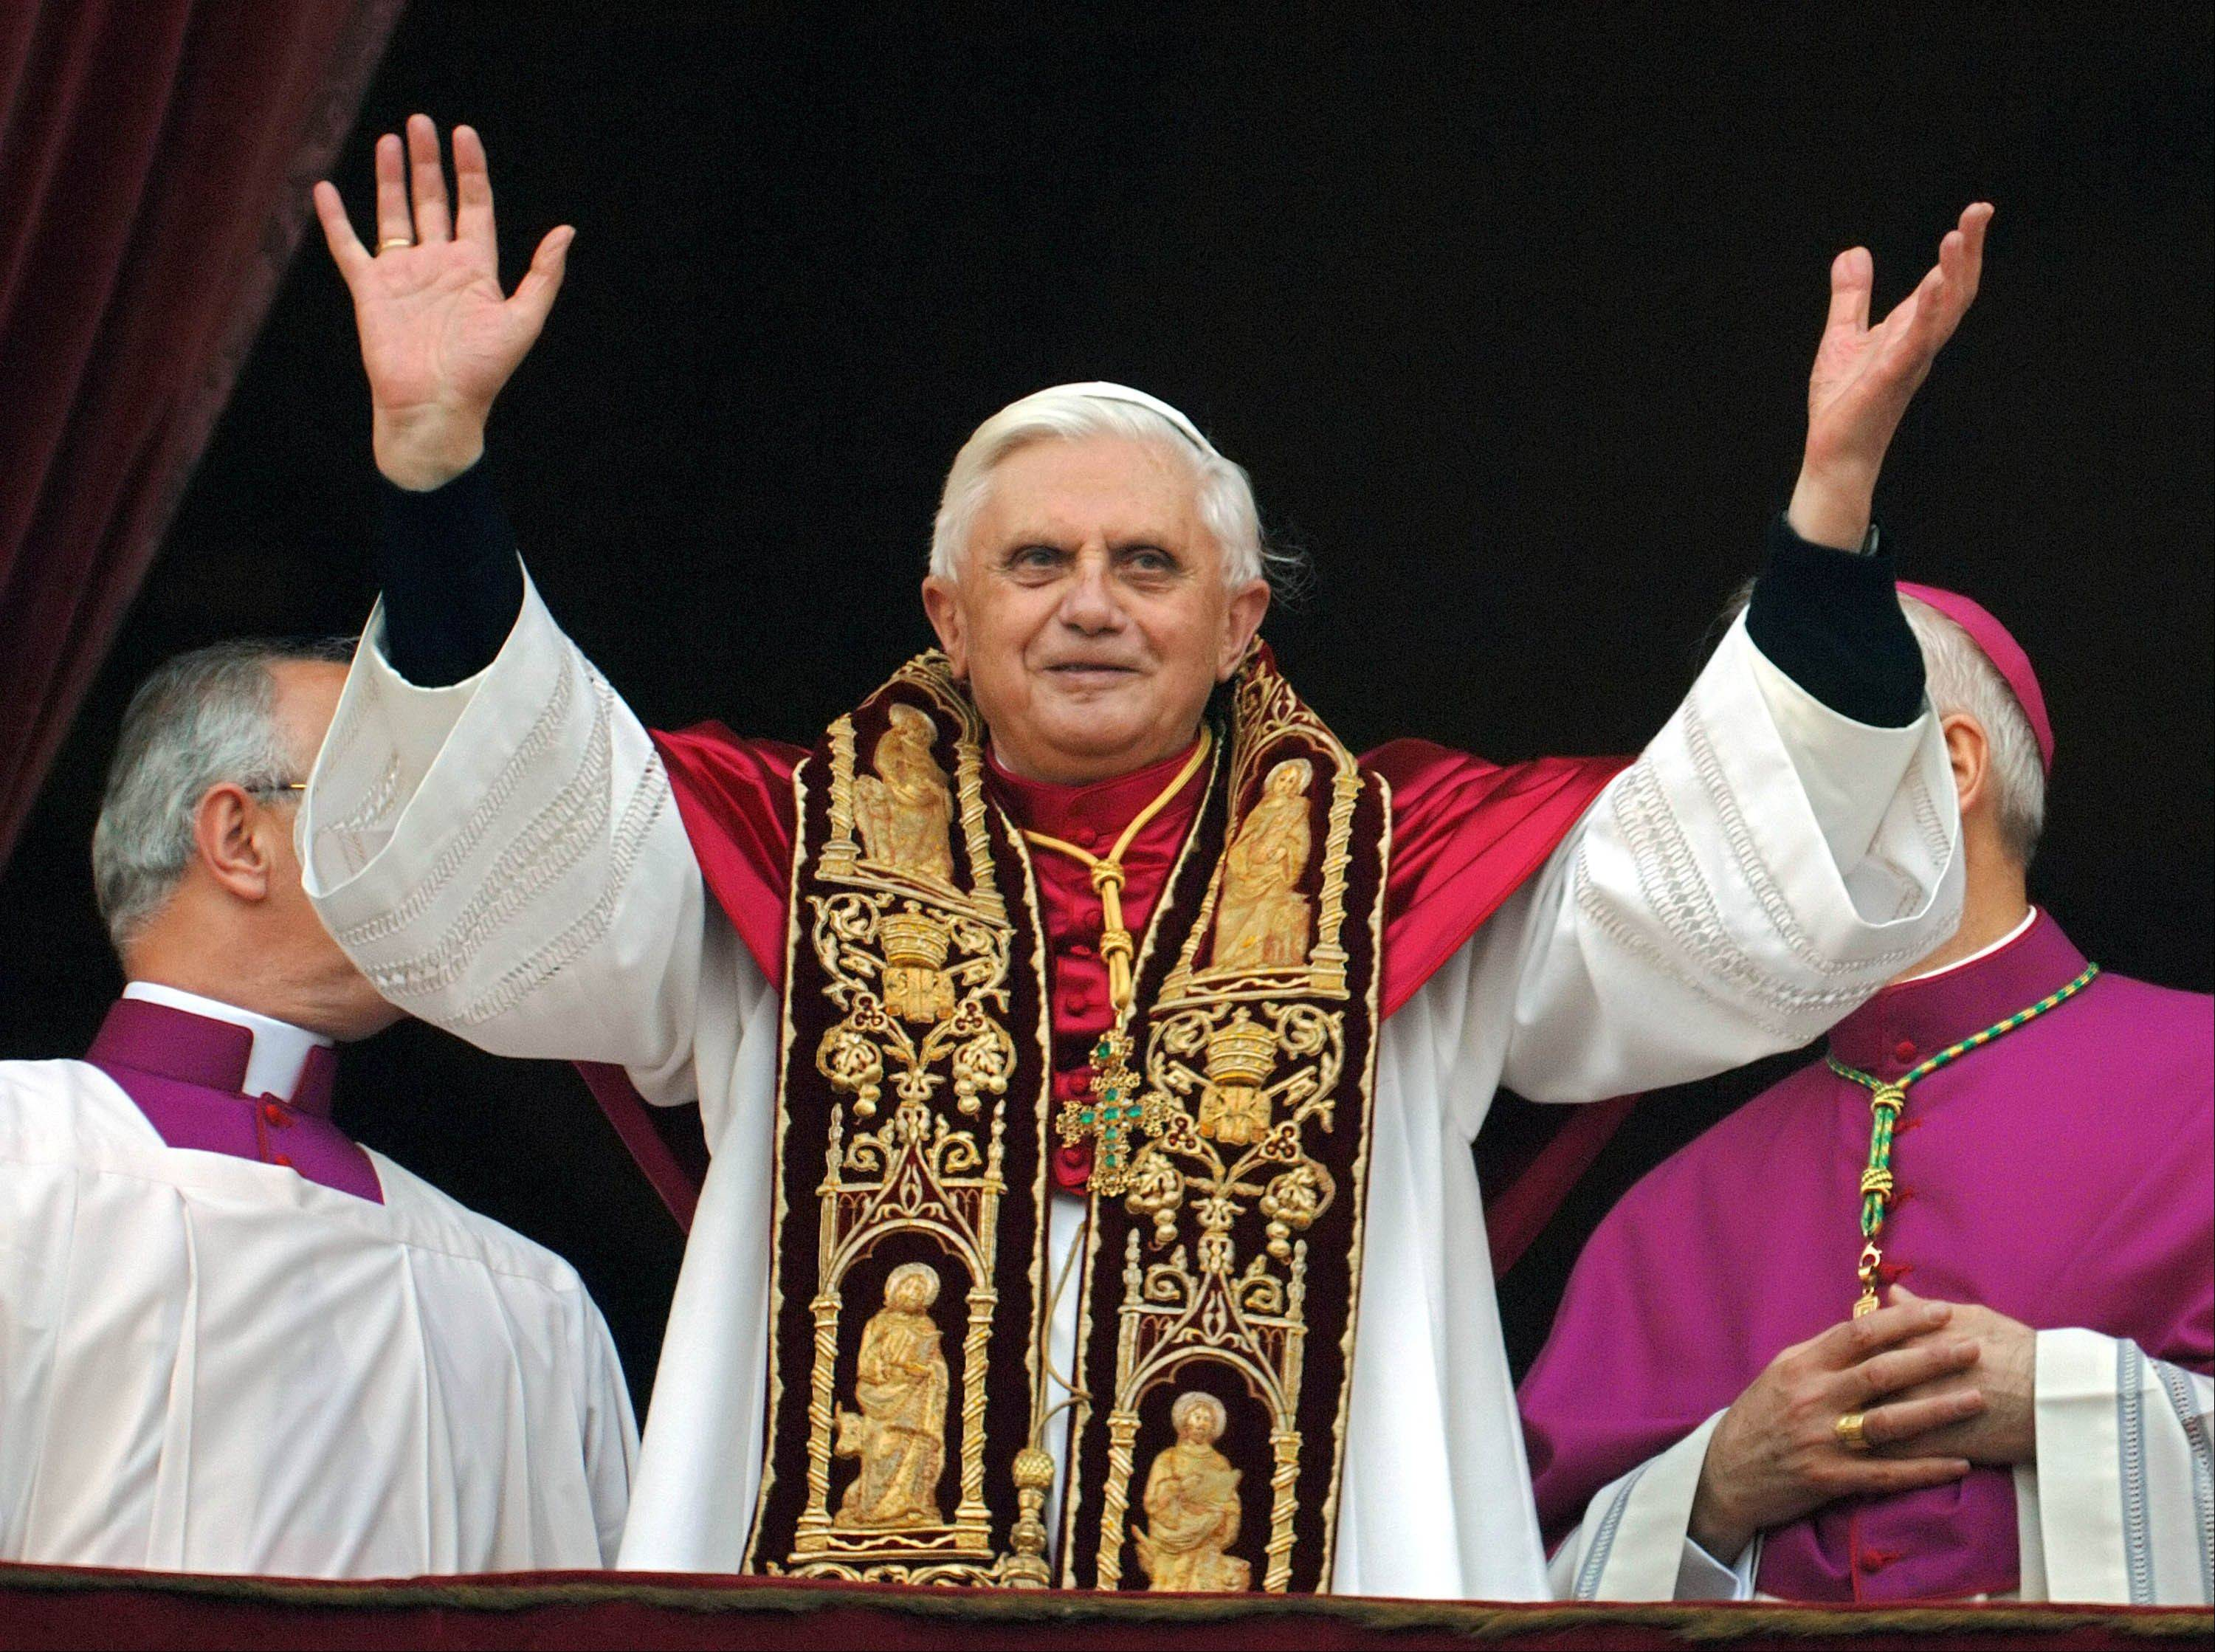 Pope Benedict XVI greets the crowd from the central balcony of St. Peter�s Basilica moments after being elected at the Vatican.